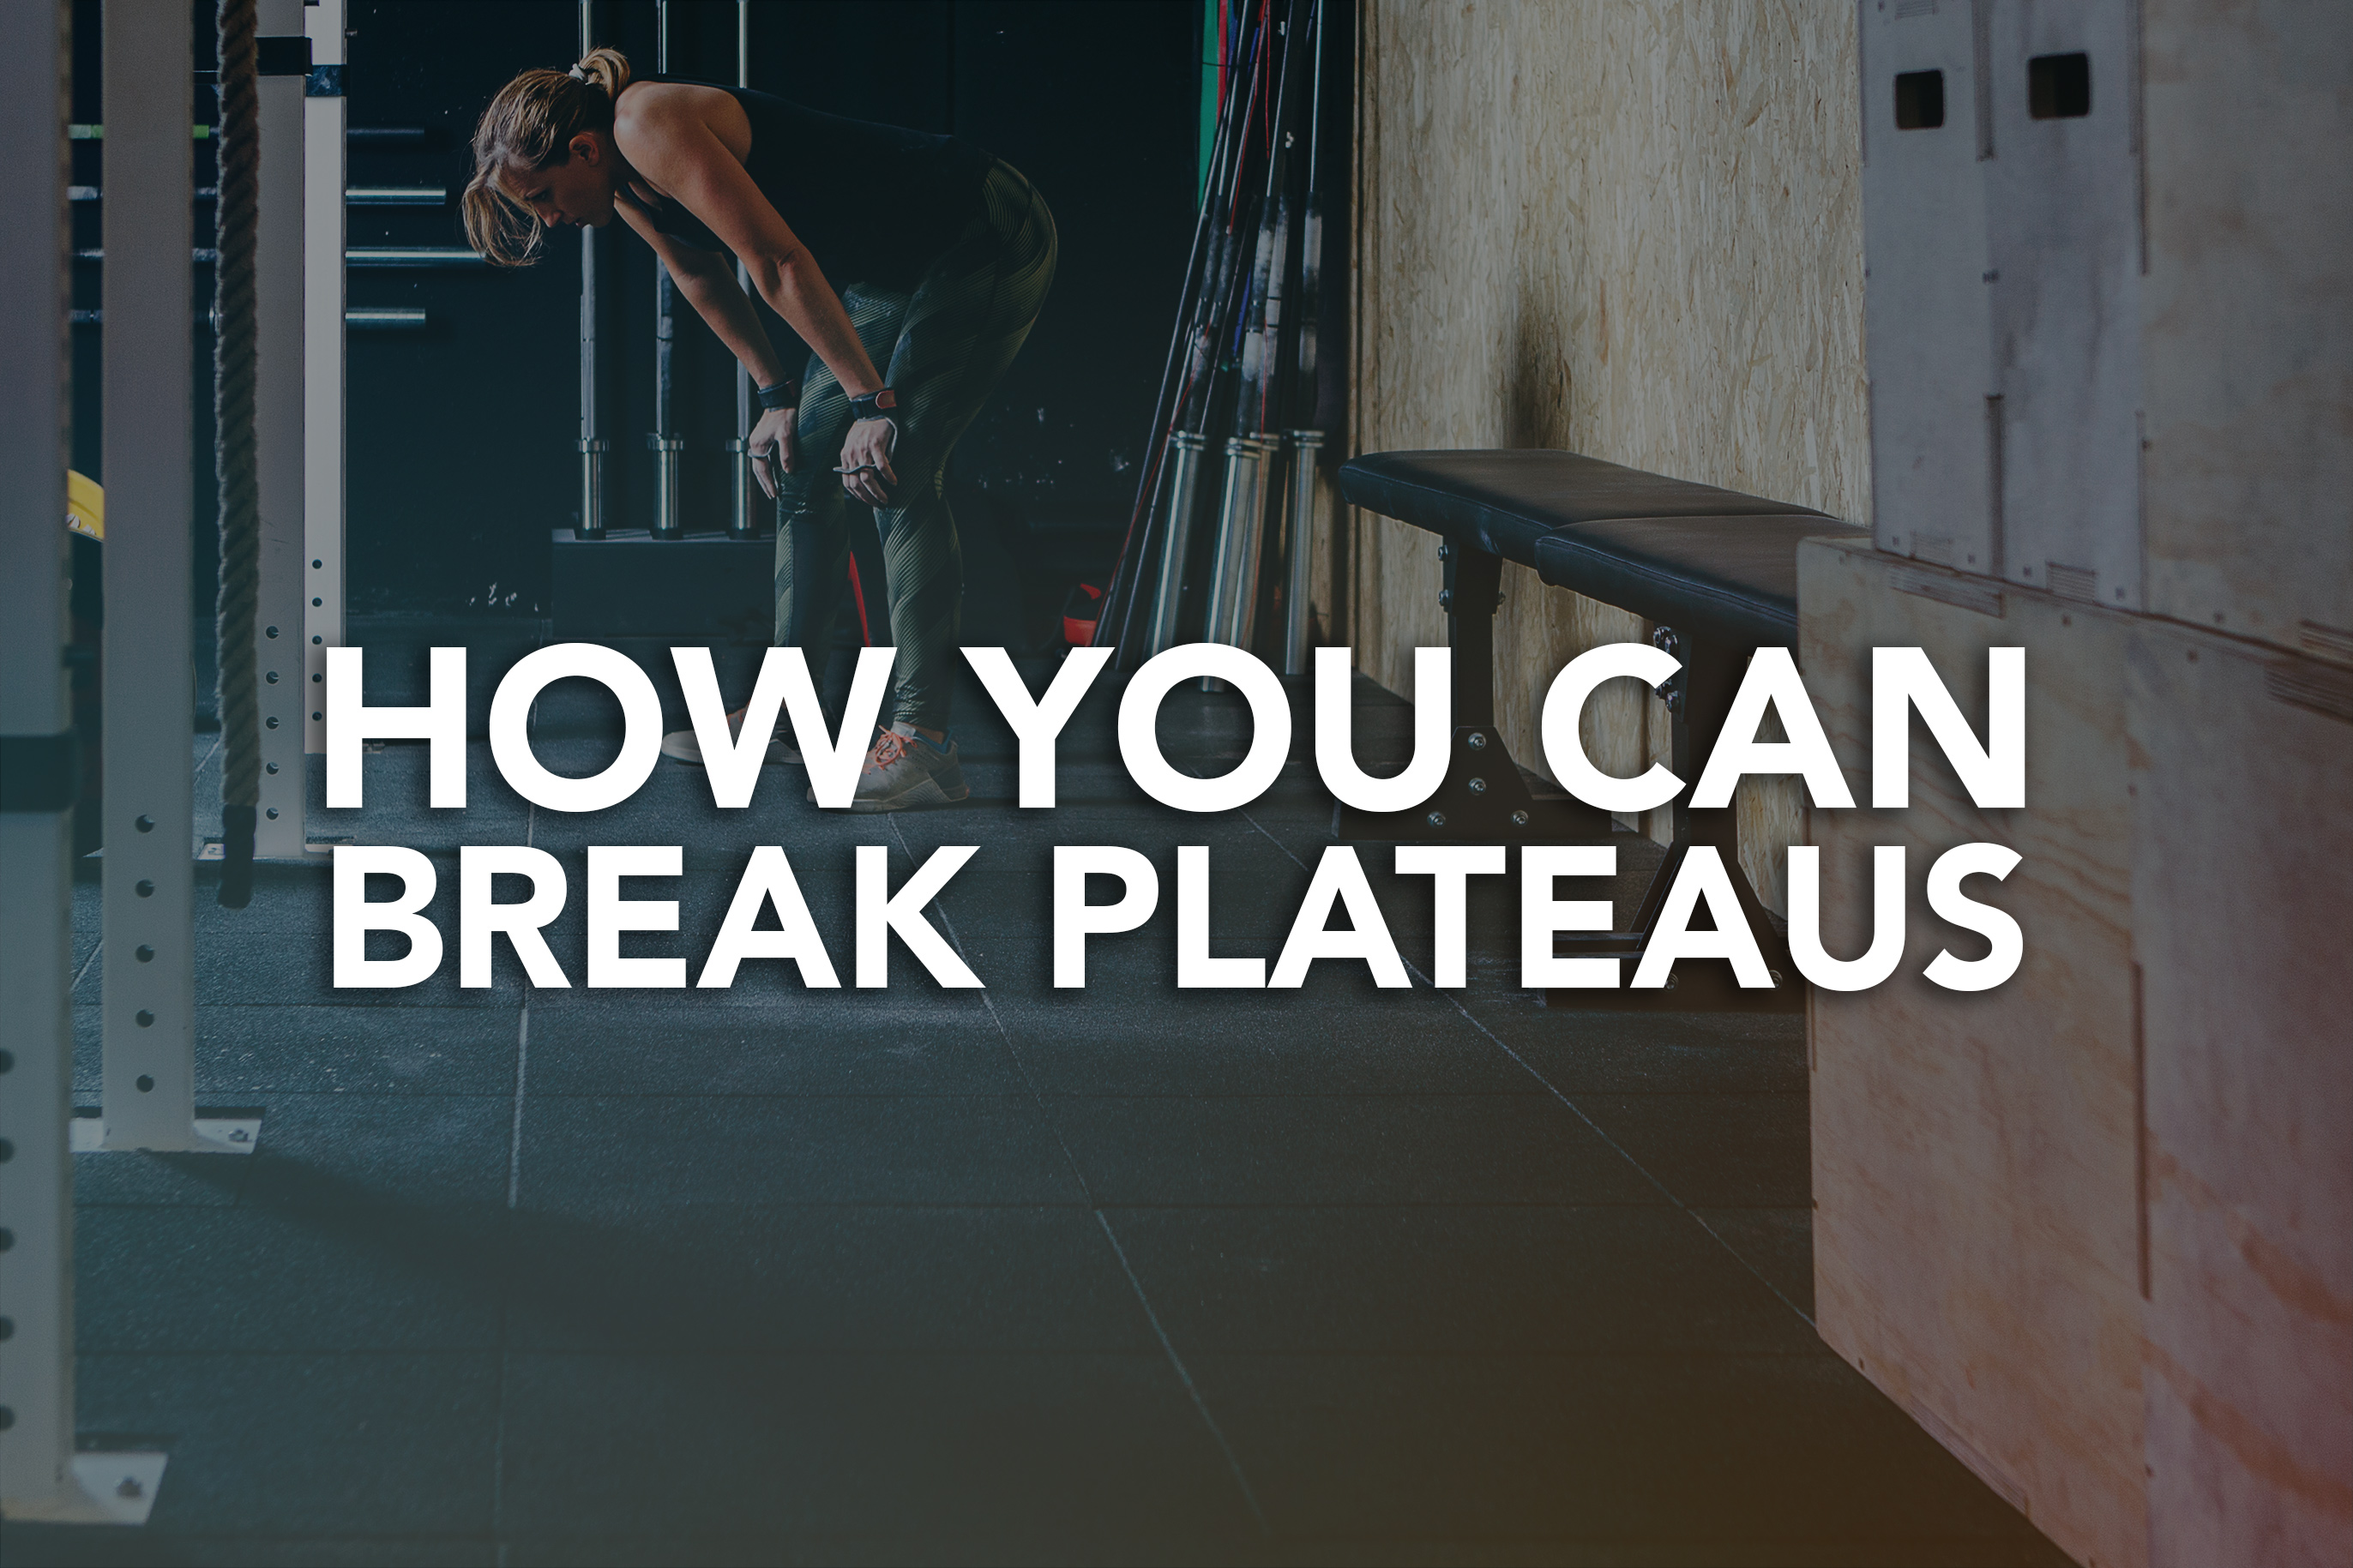 How You Can Break Plateaus